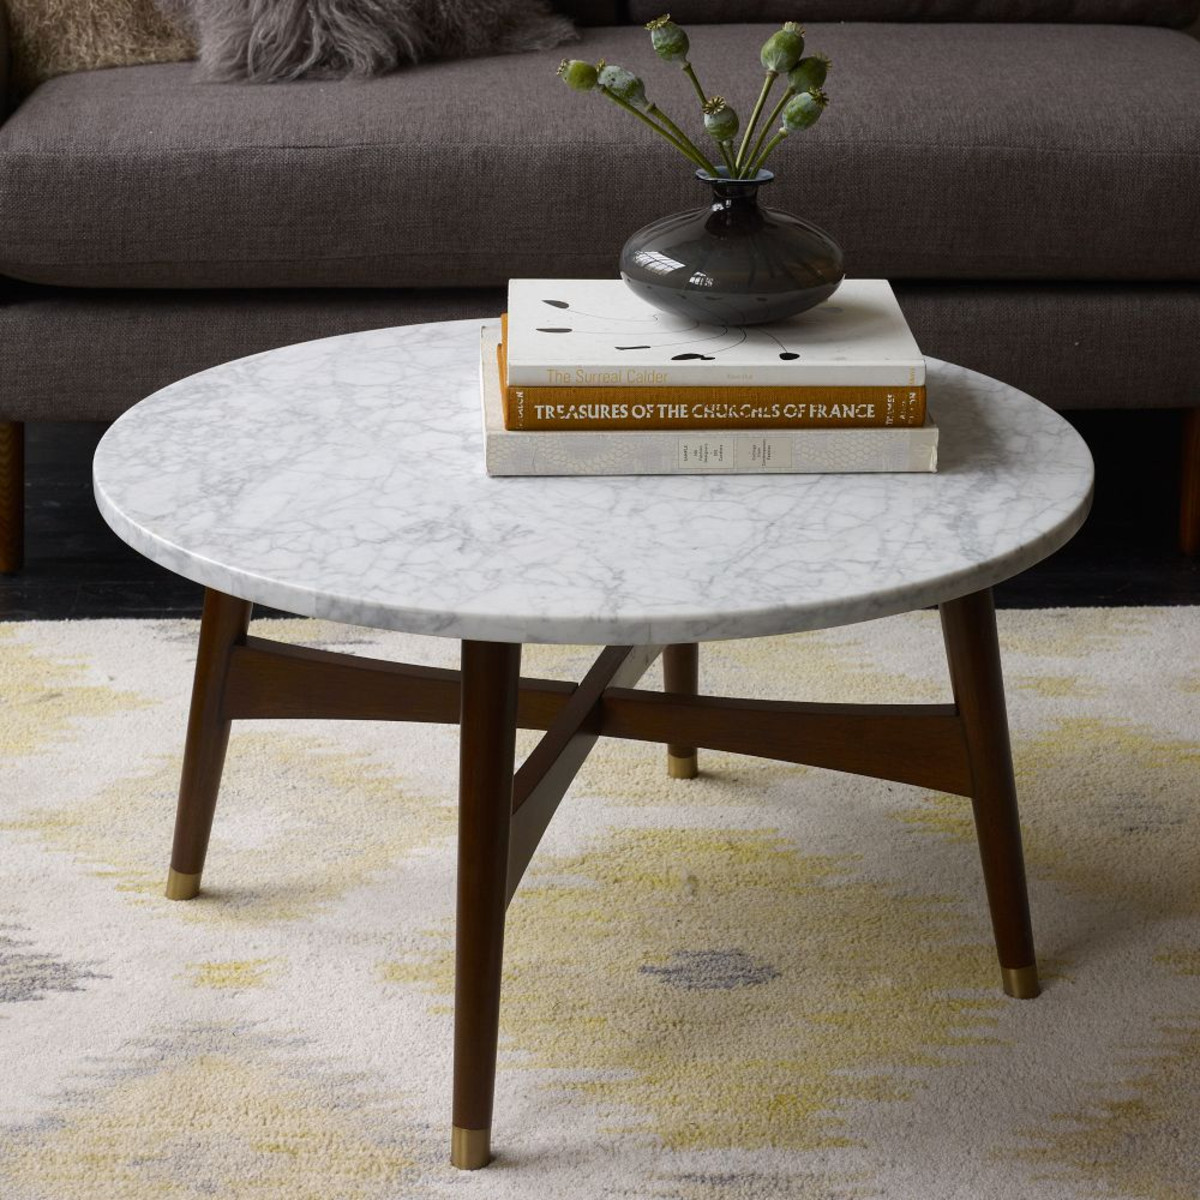 Superbe Round Marble Top And Wooden Legs For Small Coffee Table Placed Near Grey  Sofa